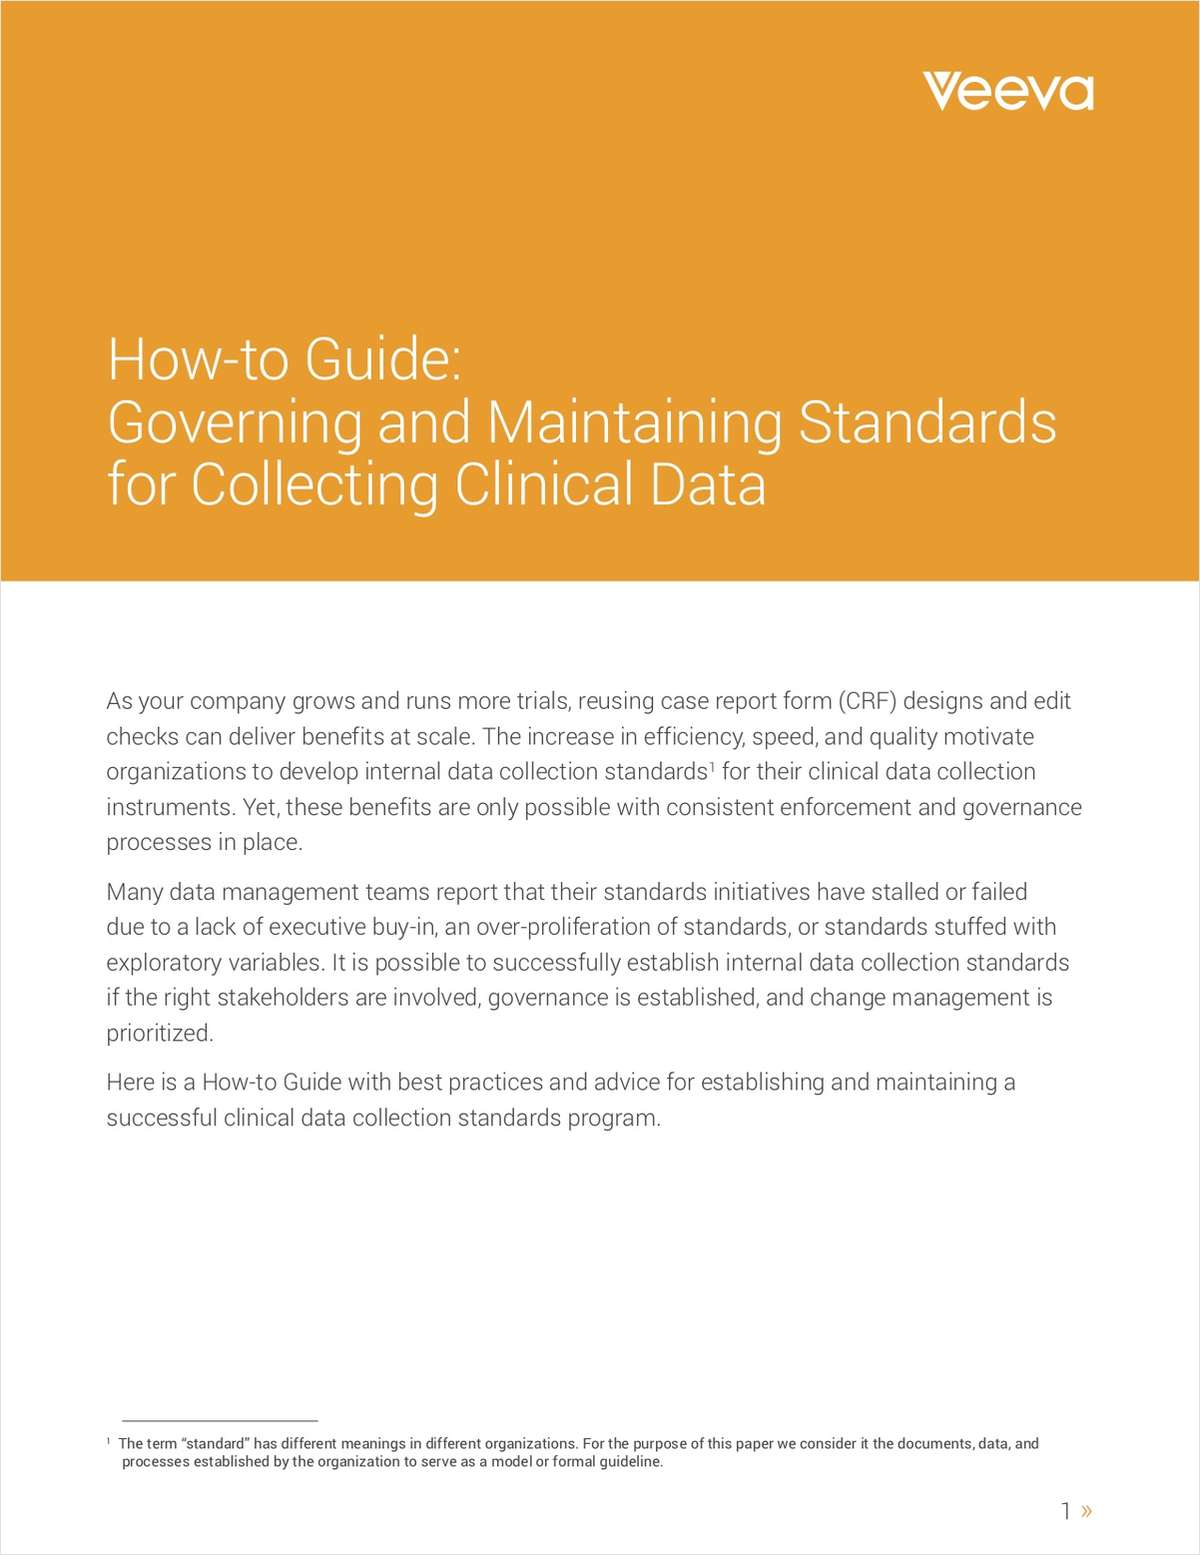 How to Establish a Successful Clinical Data Standards Program